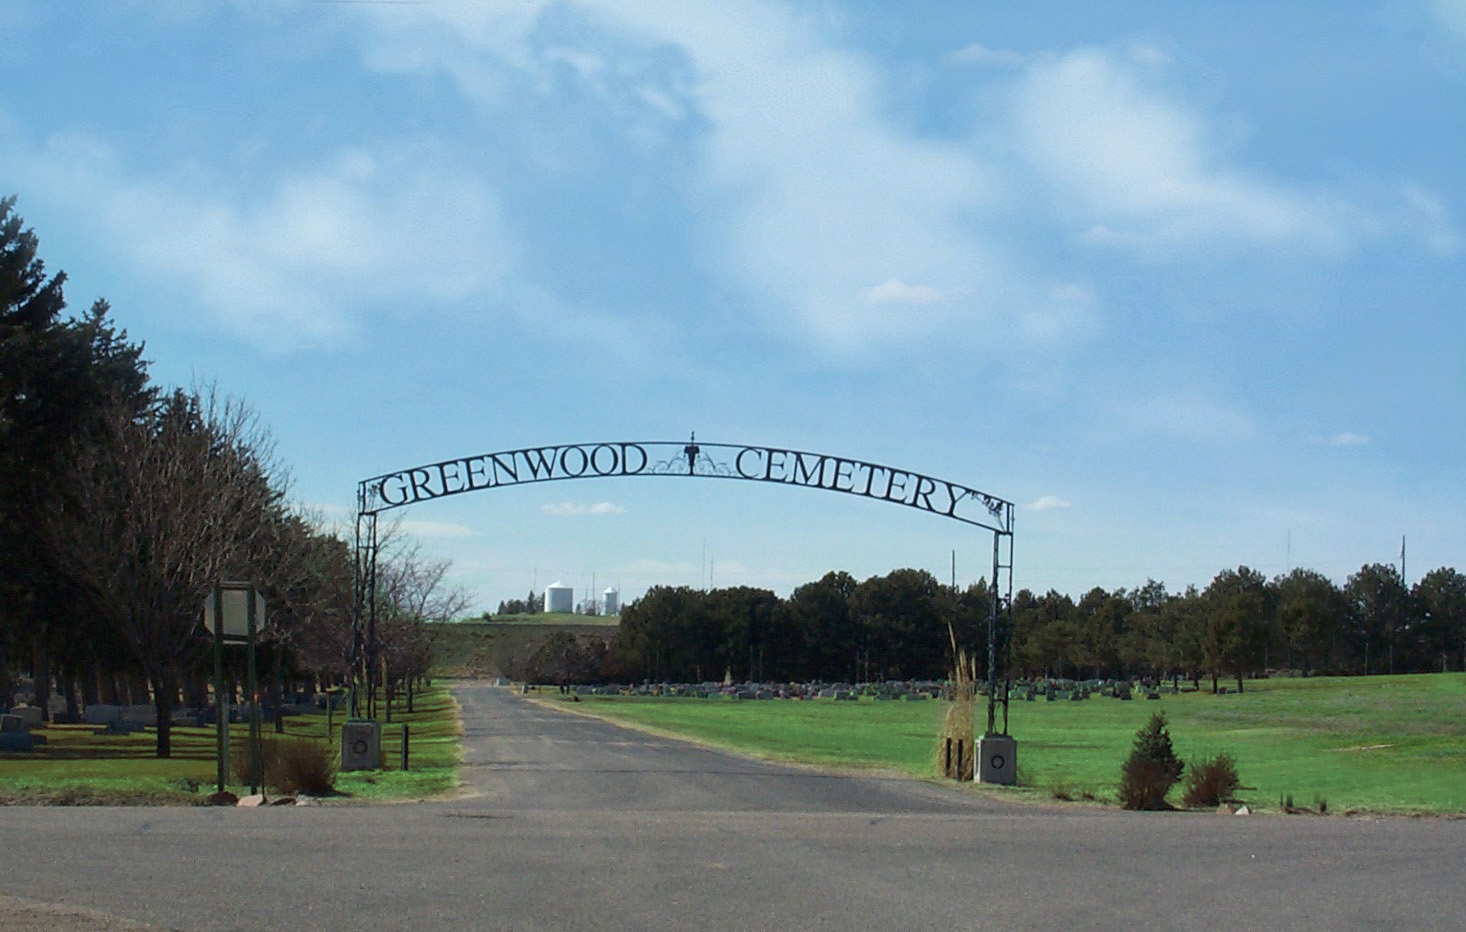 Greenwood Gate Copy